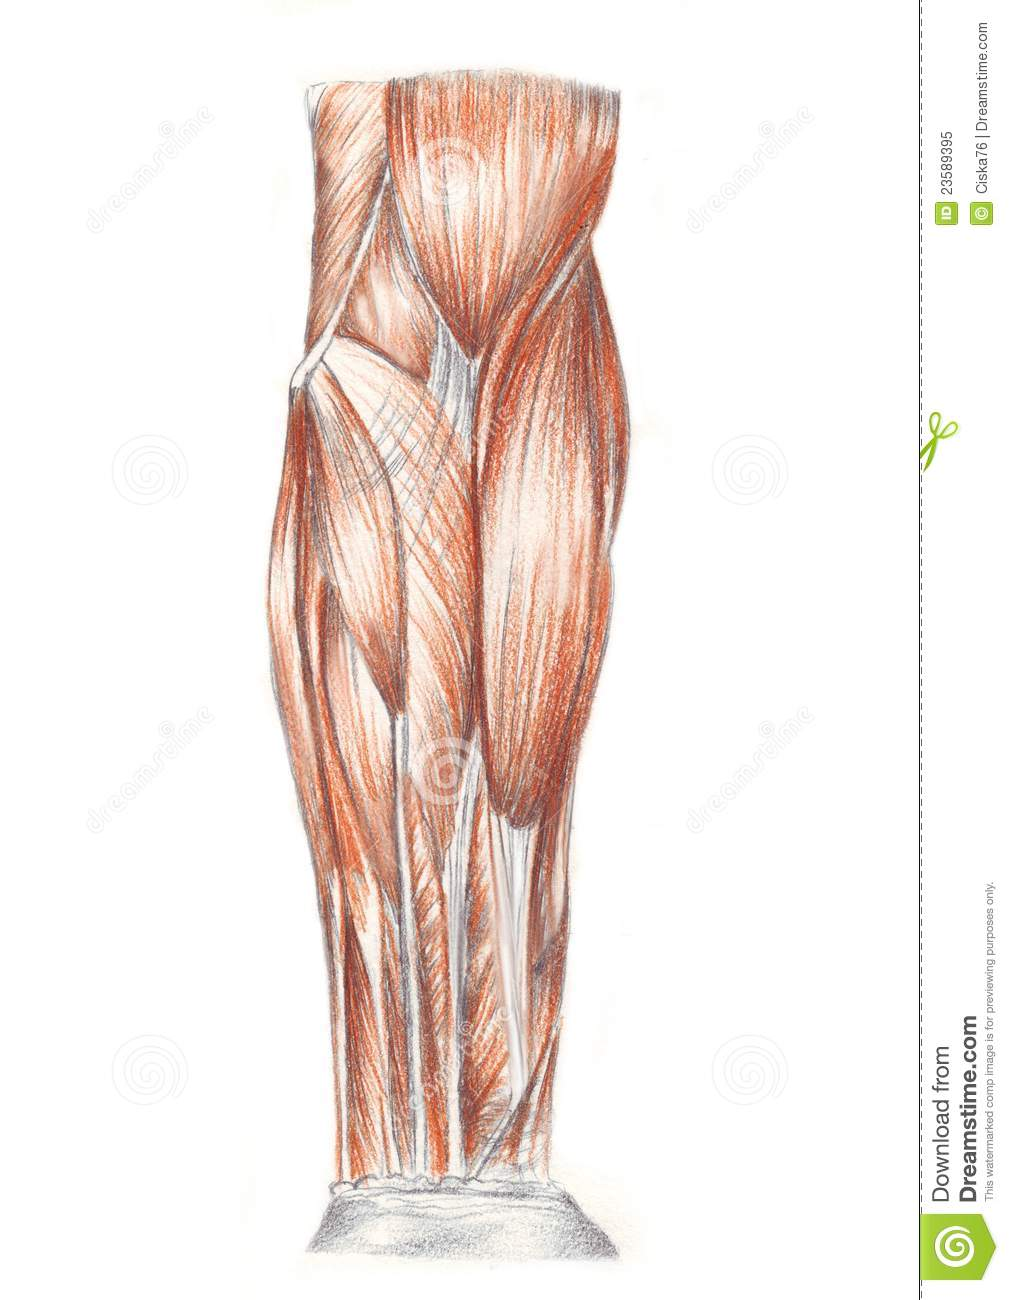 Human Anatomy Muscles Of The Arm Stock Illustration Illustration